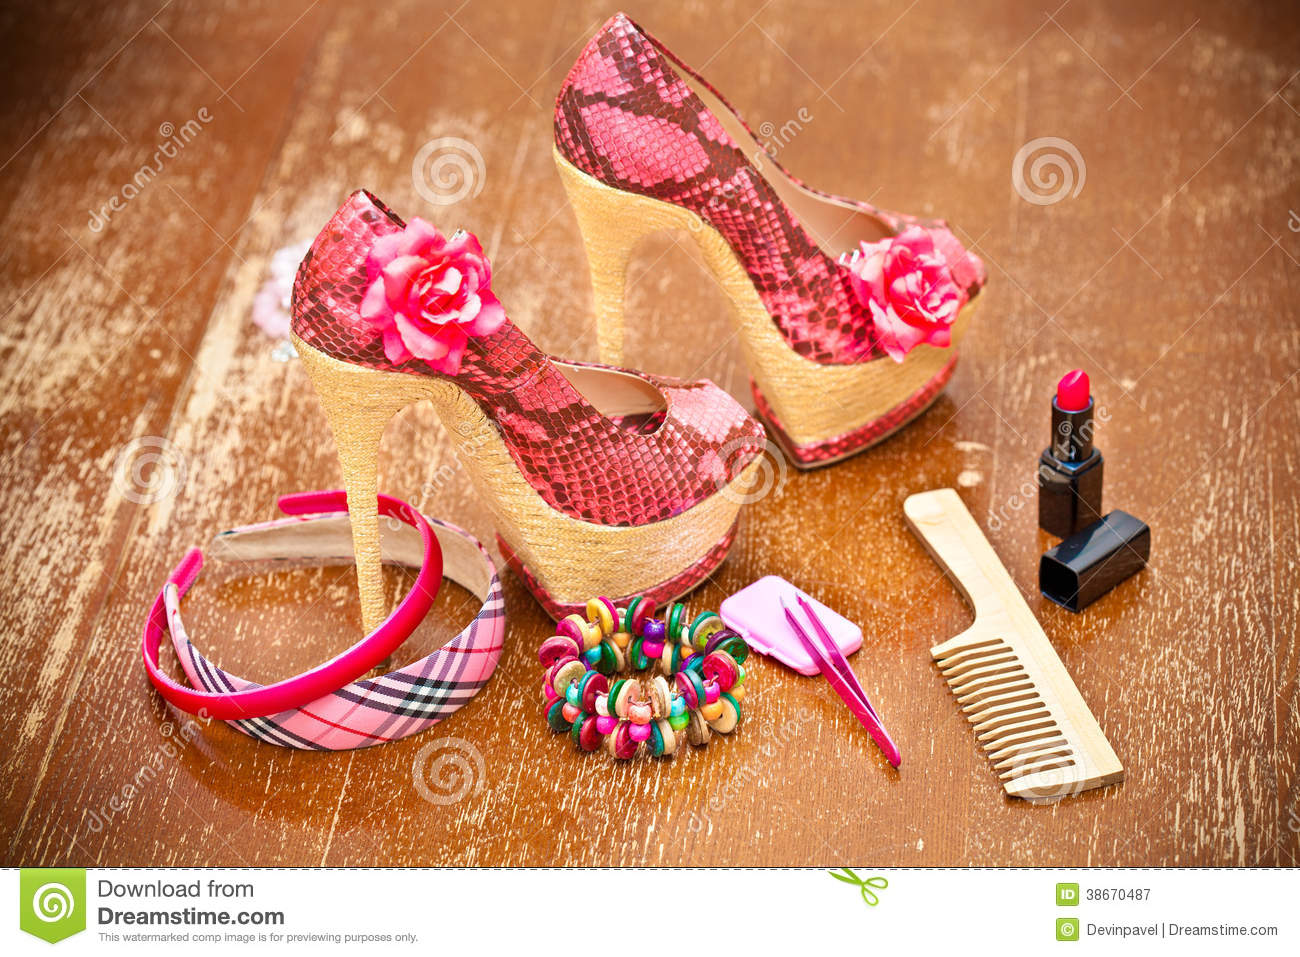 e3b2524e3 Women Shoes Pink. Women s Accessories. Stock Image - Image of heel ...